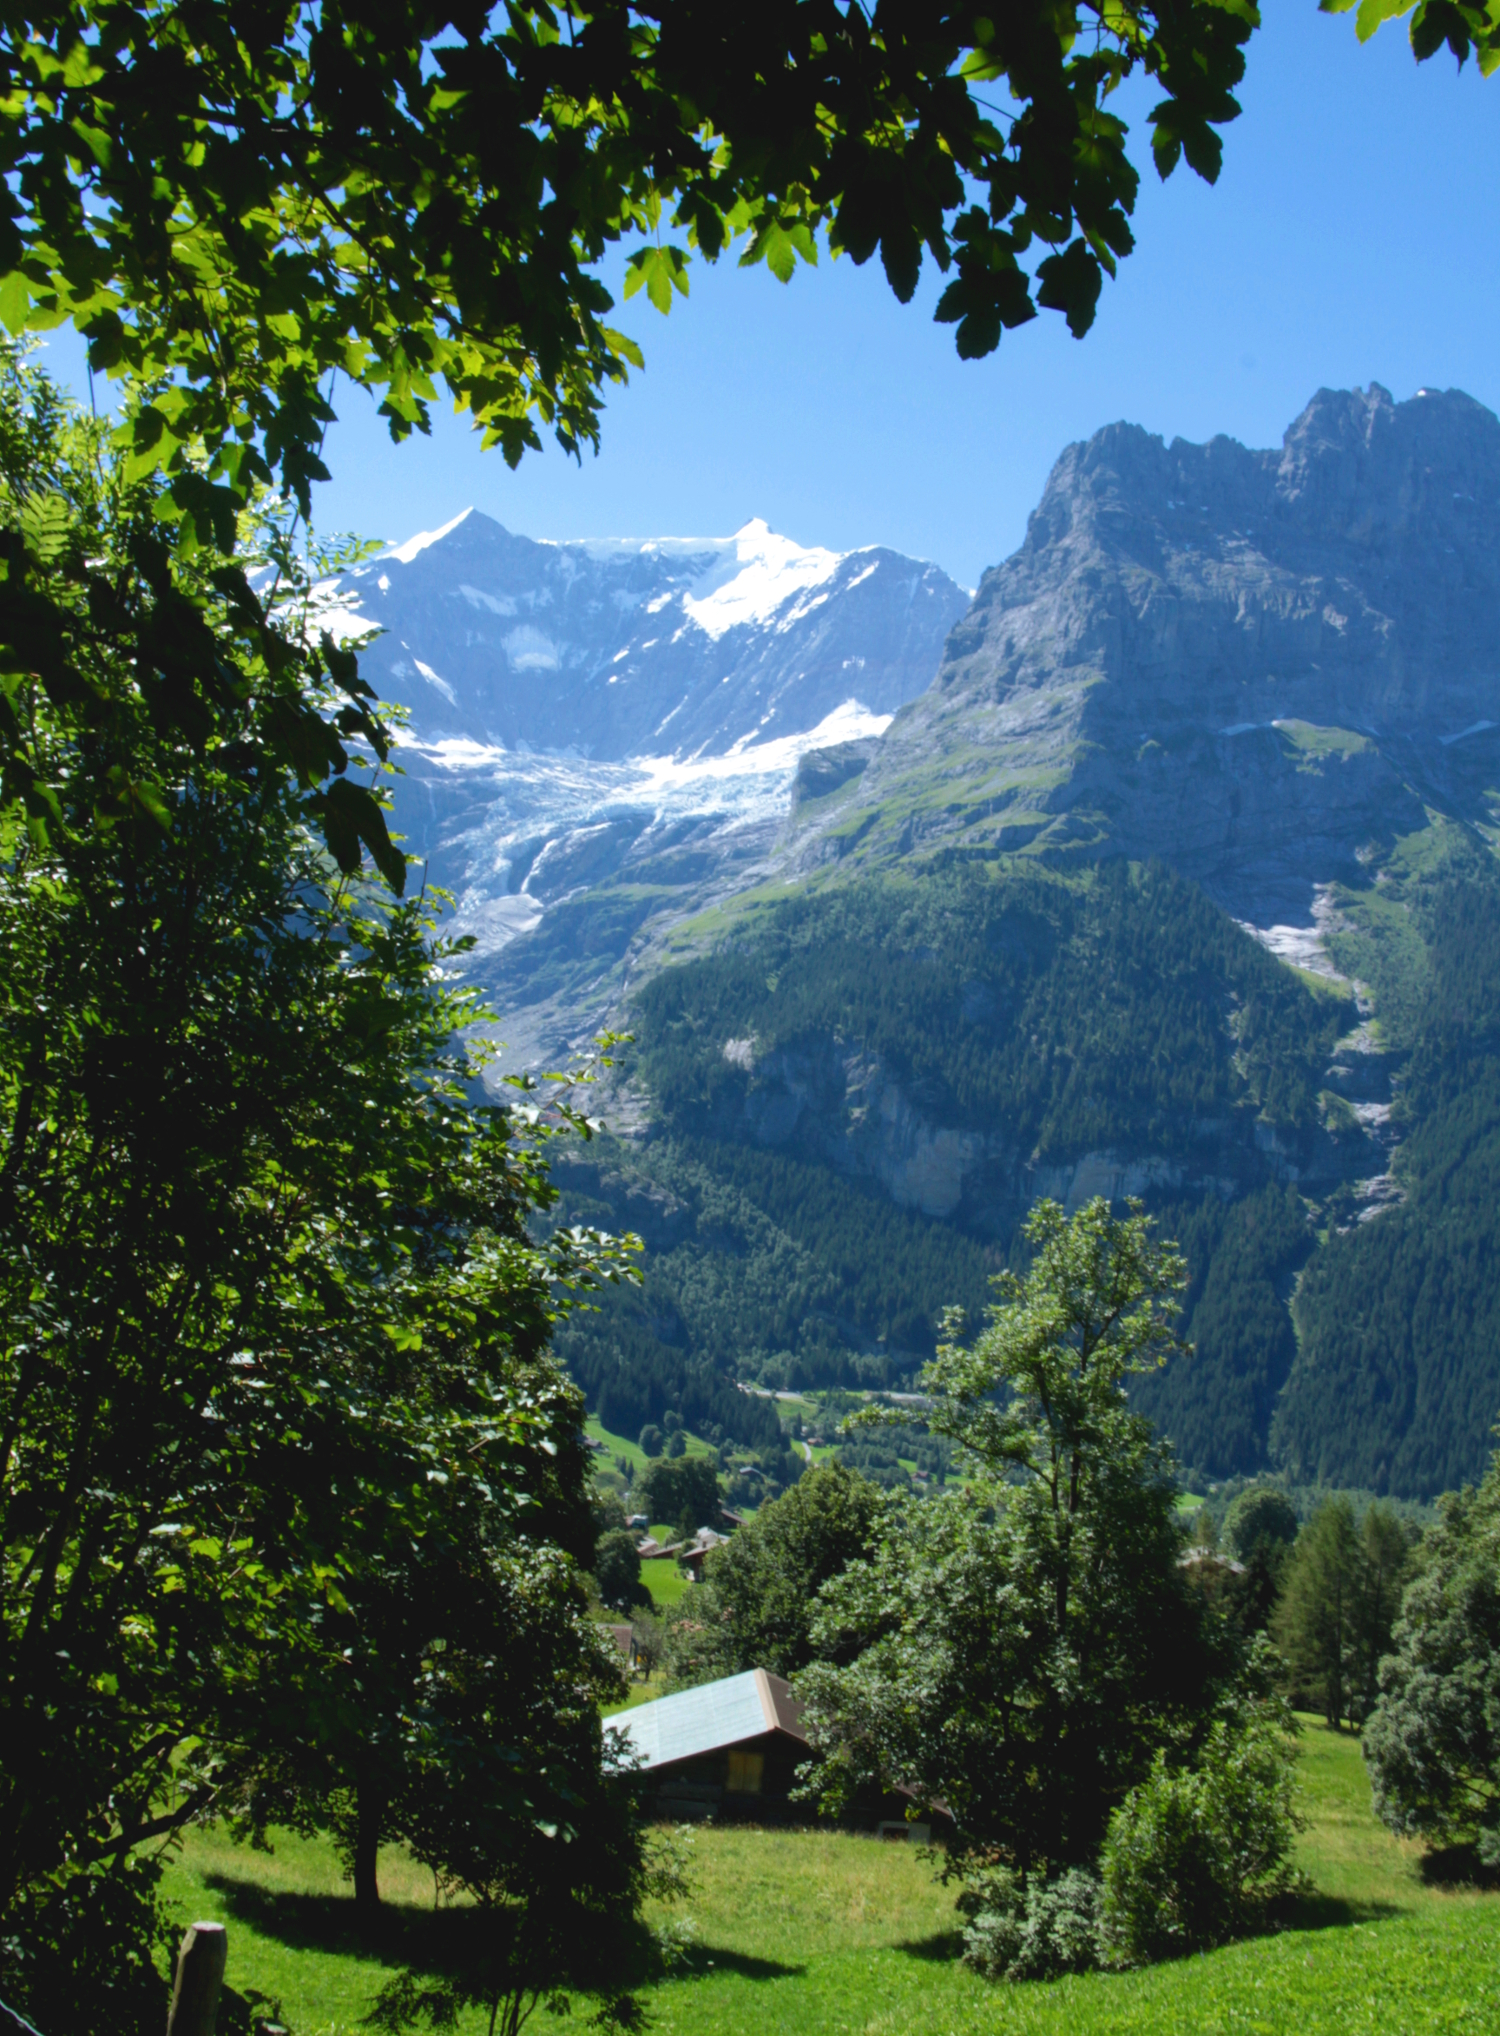 Walking from Grindelwald to First allows you to discover fantastic views of the majestic Eiger